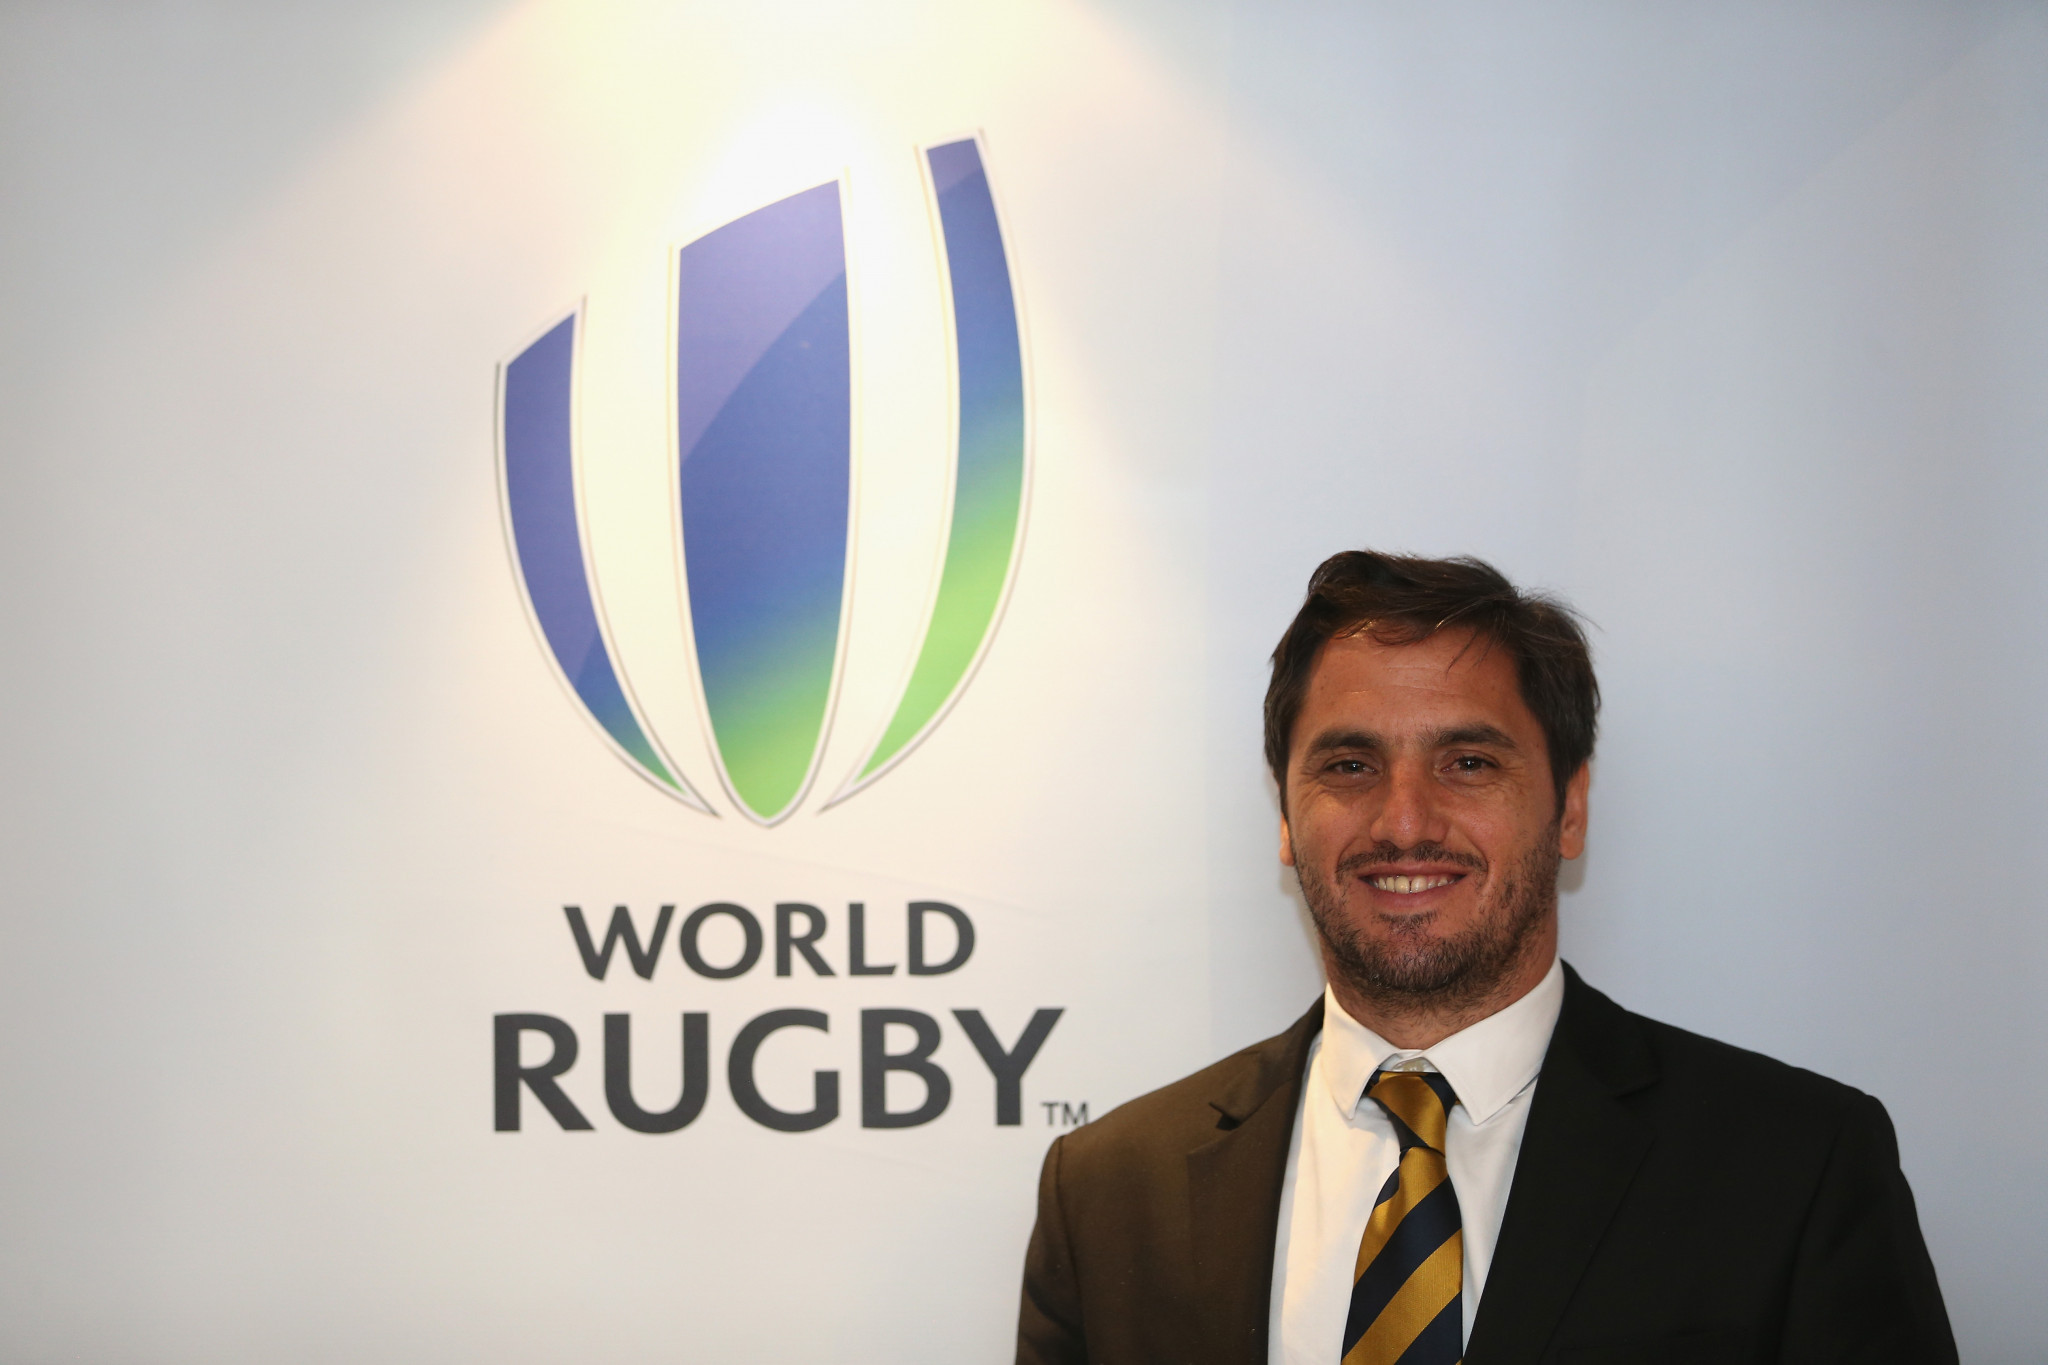 Agustín Pichot, who is running for World Rugby chairman, revealed the Argentina bid for the 2027 Rugby World Cup was withdrawn to support Australia ©Getty Images